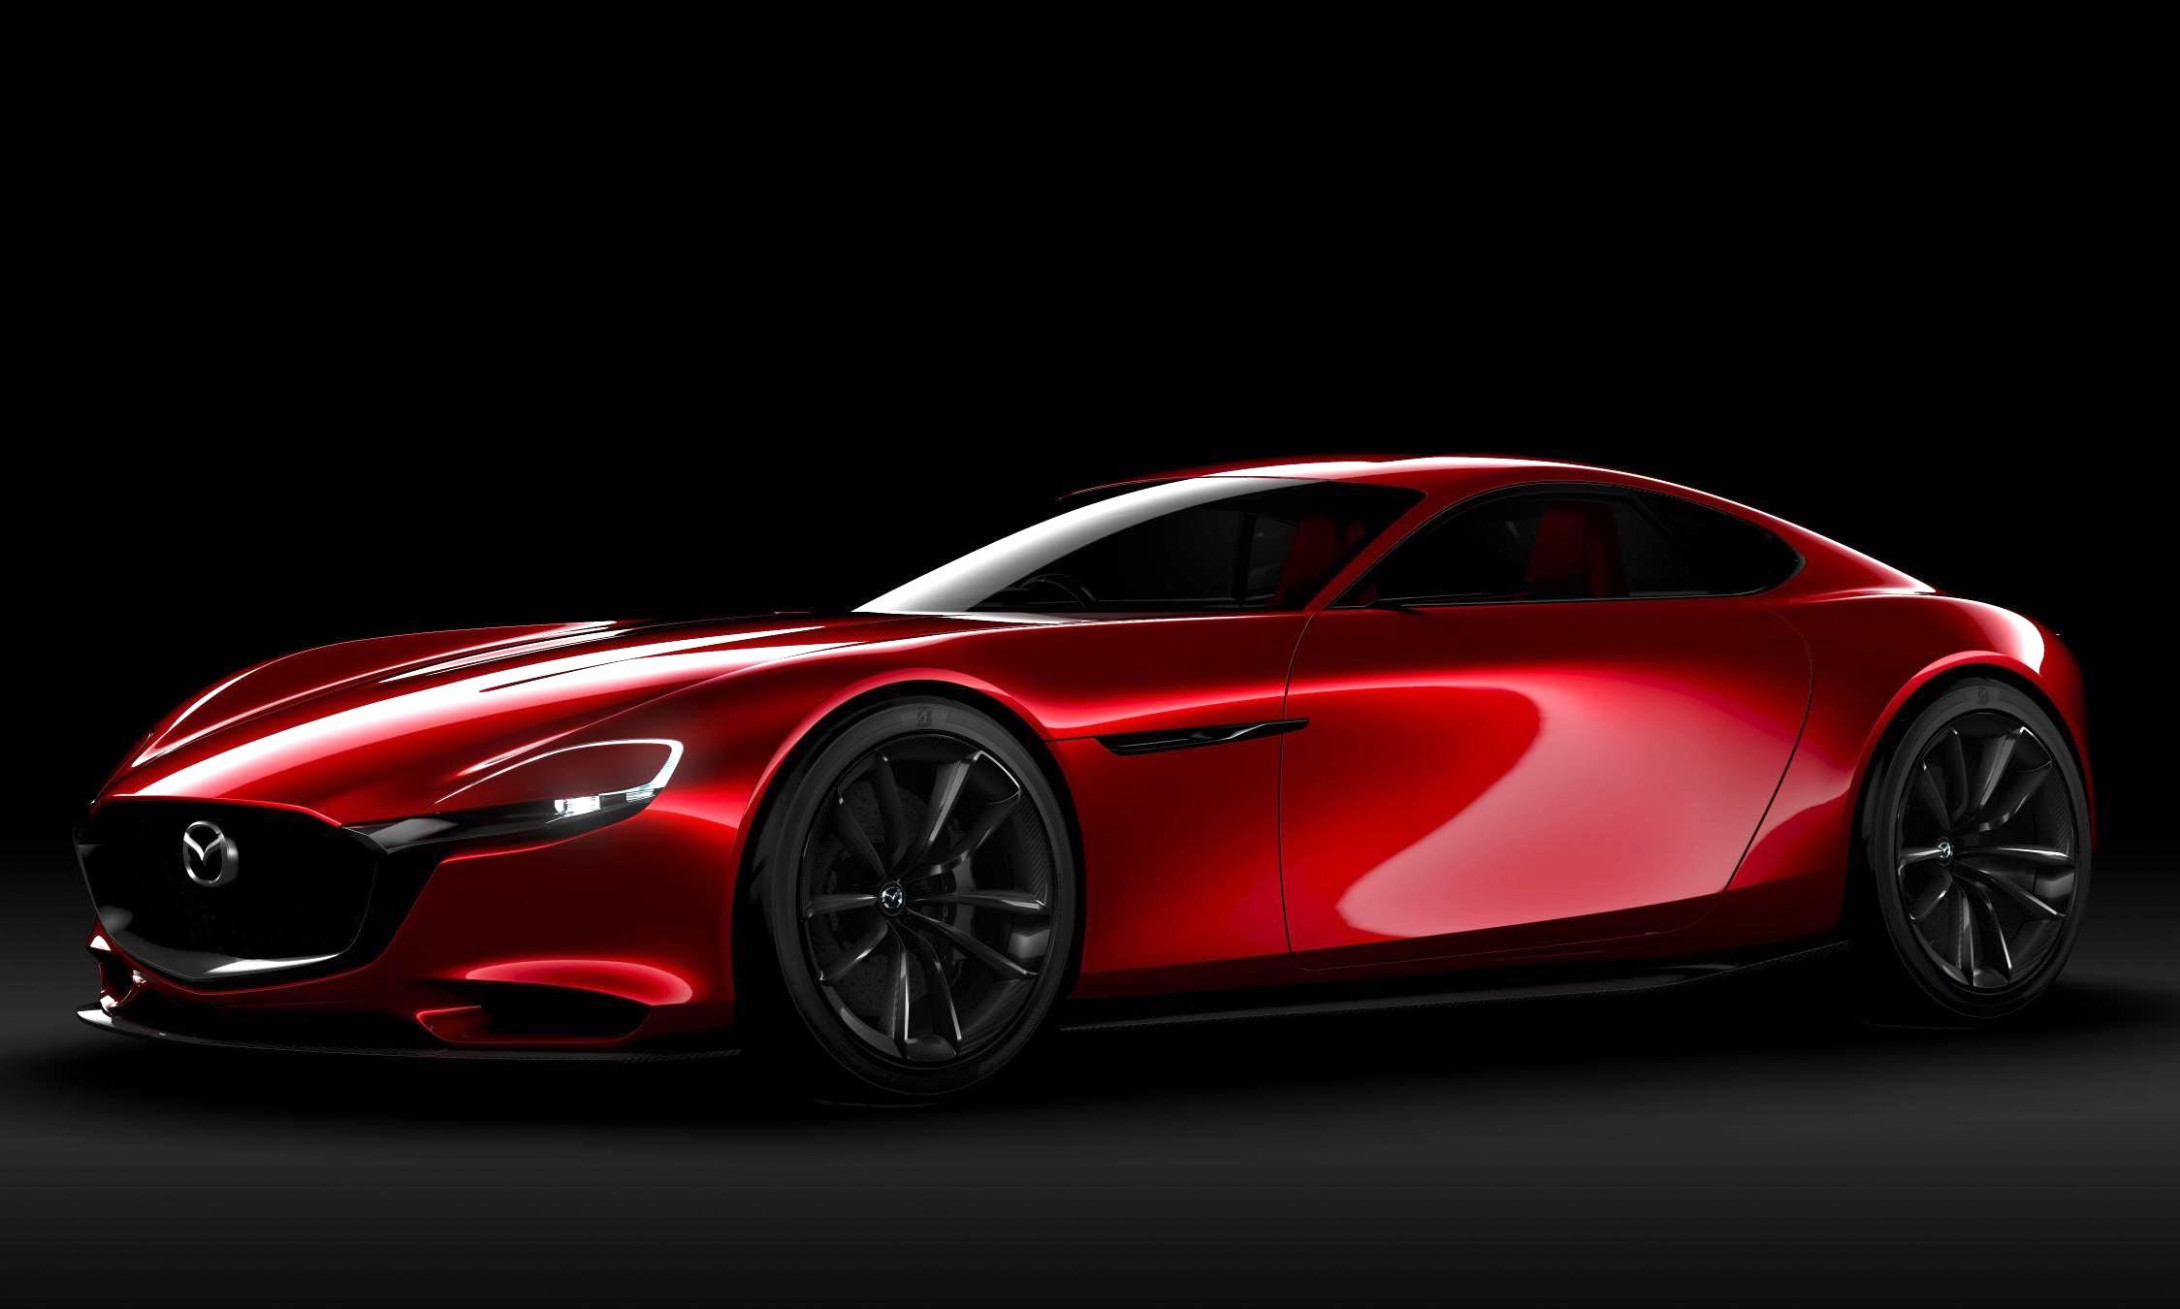 Rumors Pictures Of The 2022 Toyota Supra